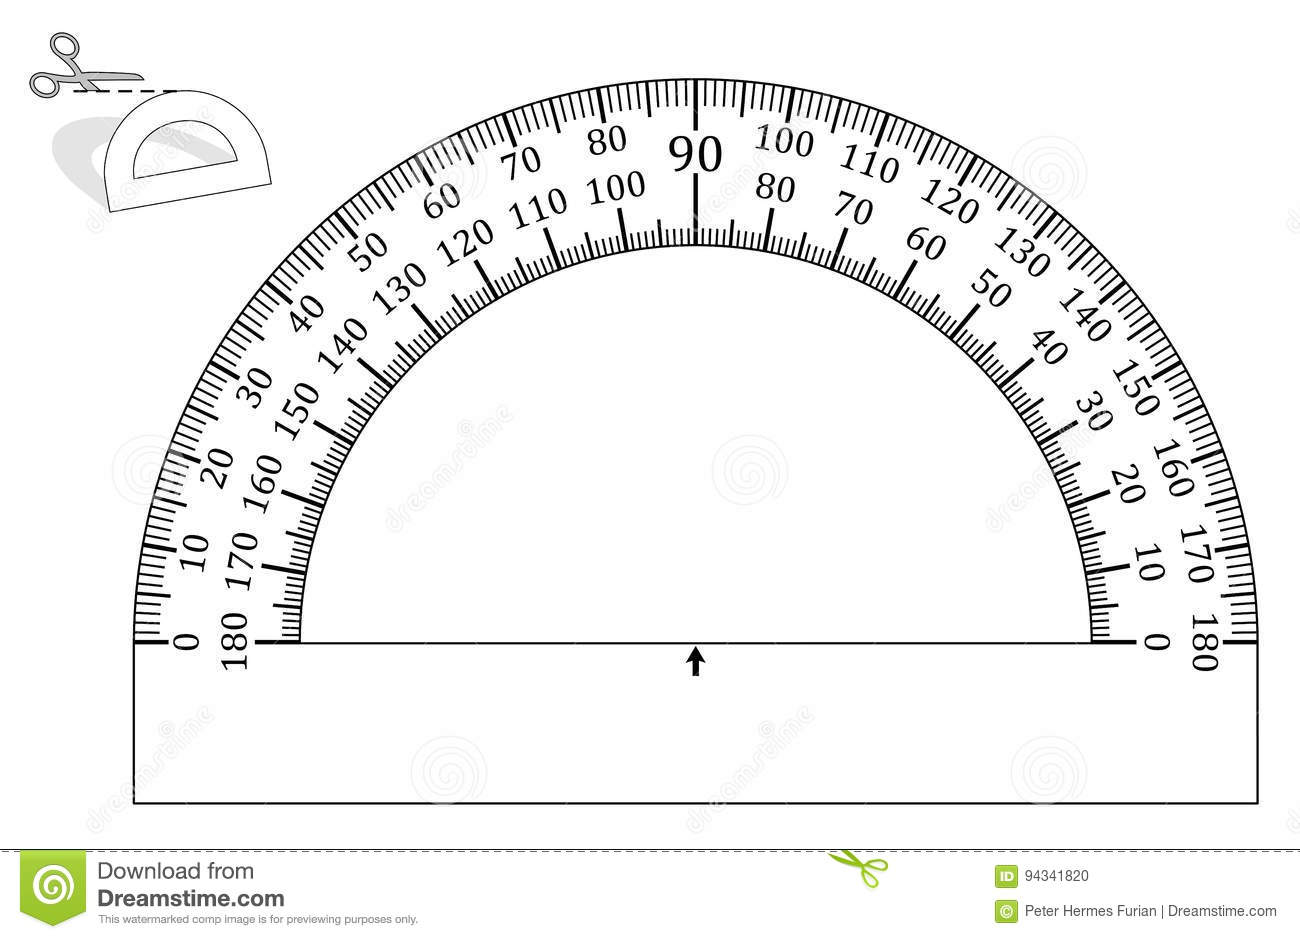 worksheet Protractor Print protractor template paper model stock vector image 94341820 royalty free vector